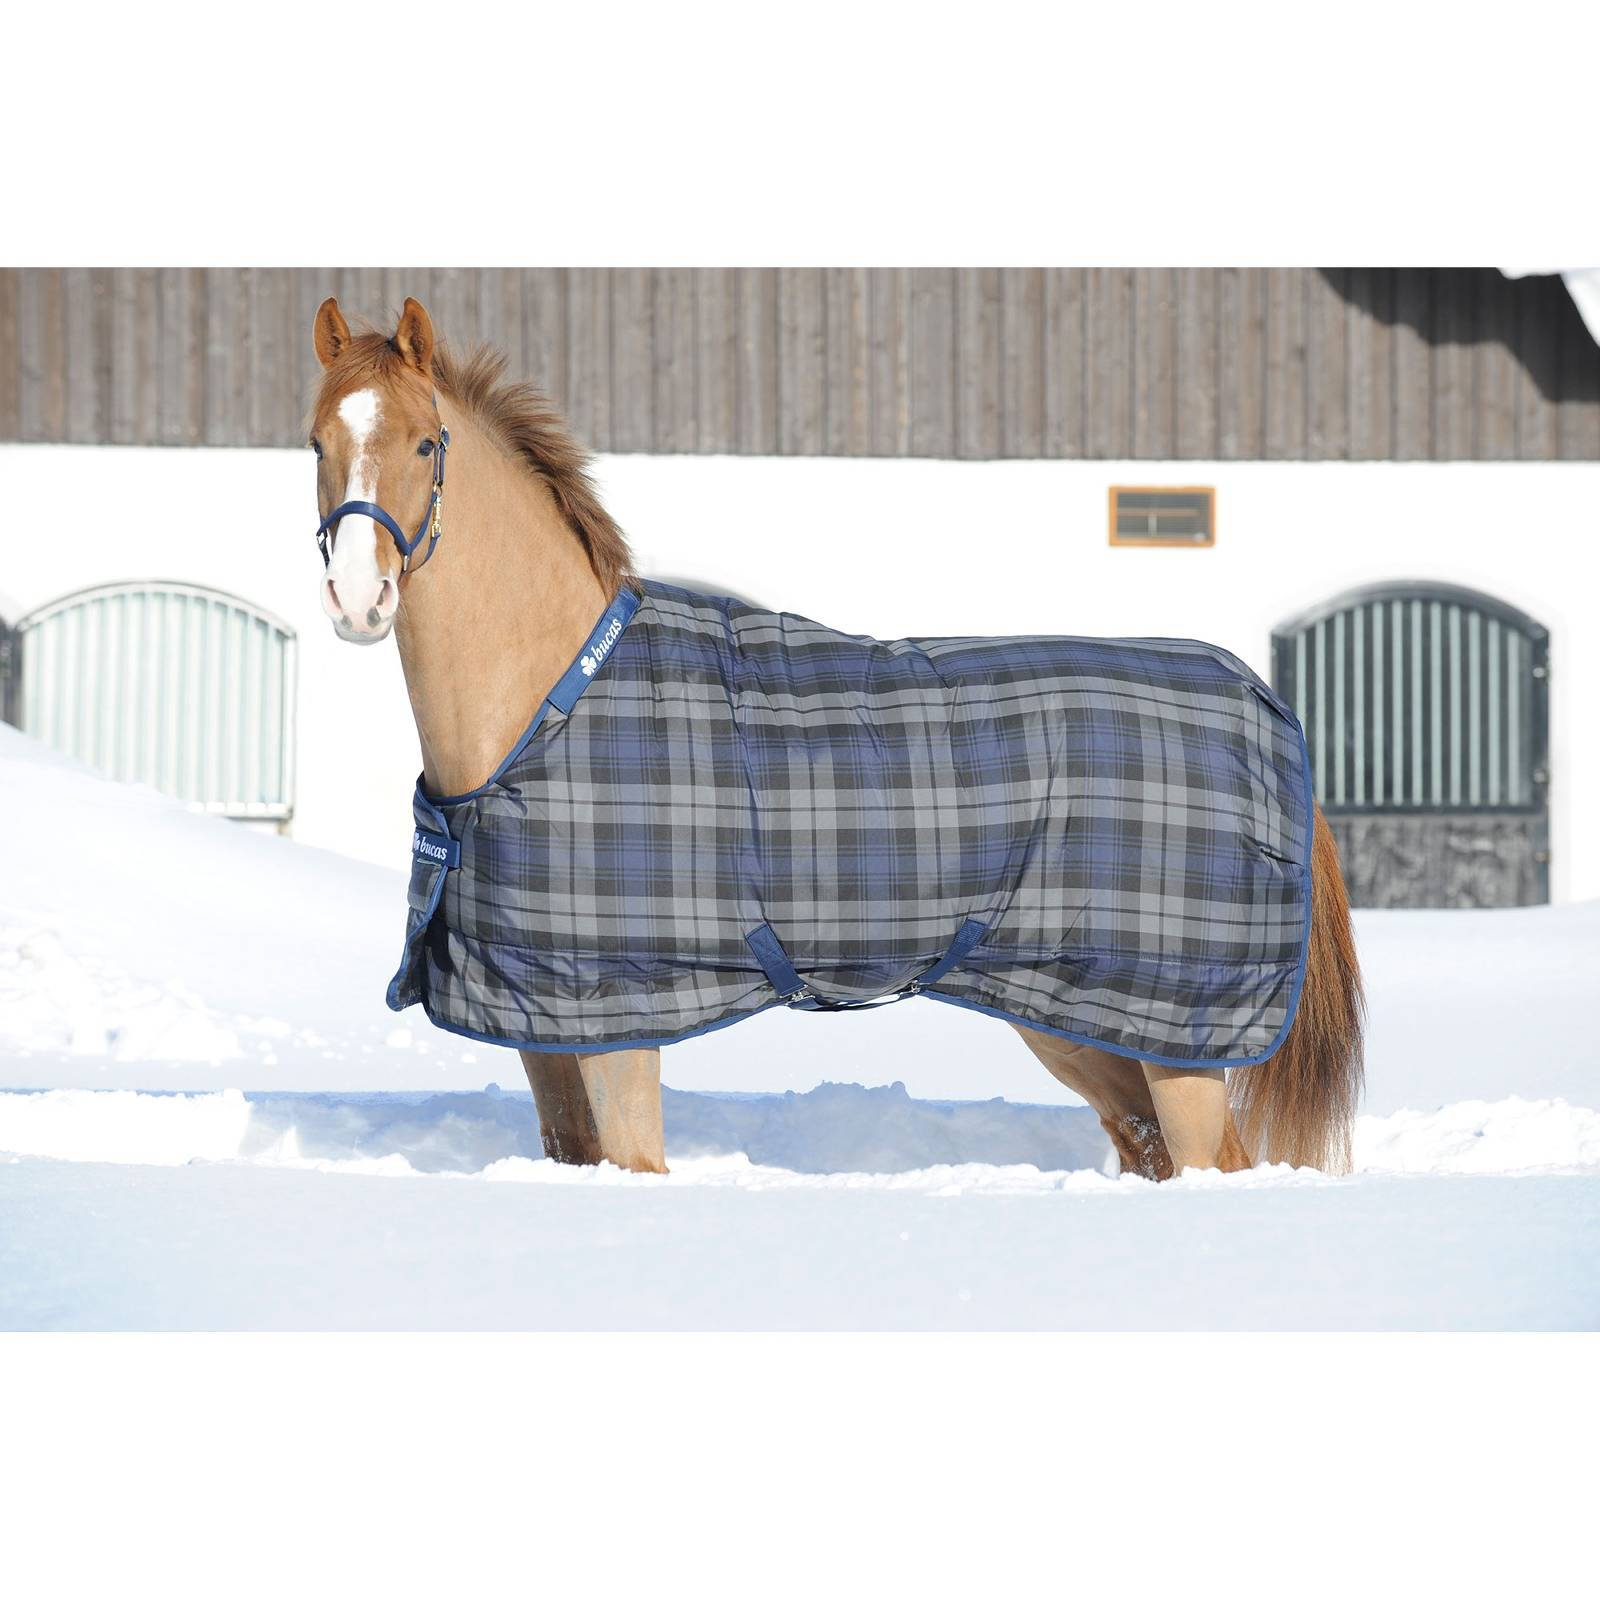 Bucas Celtic Medium Weight Stable Blanket